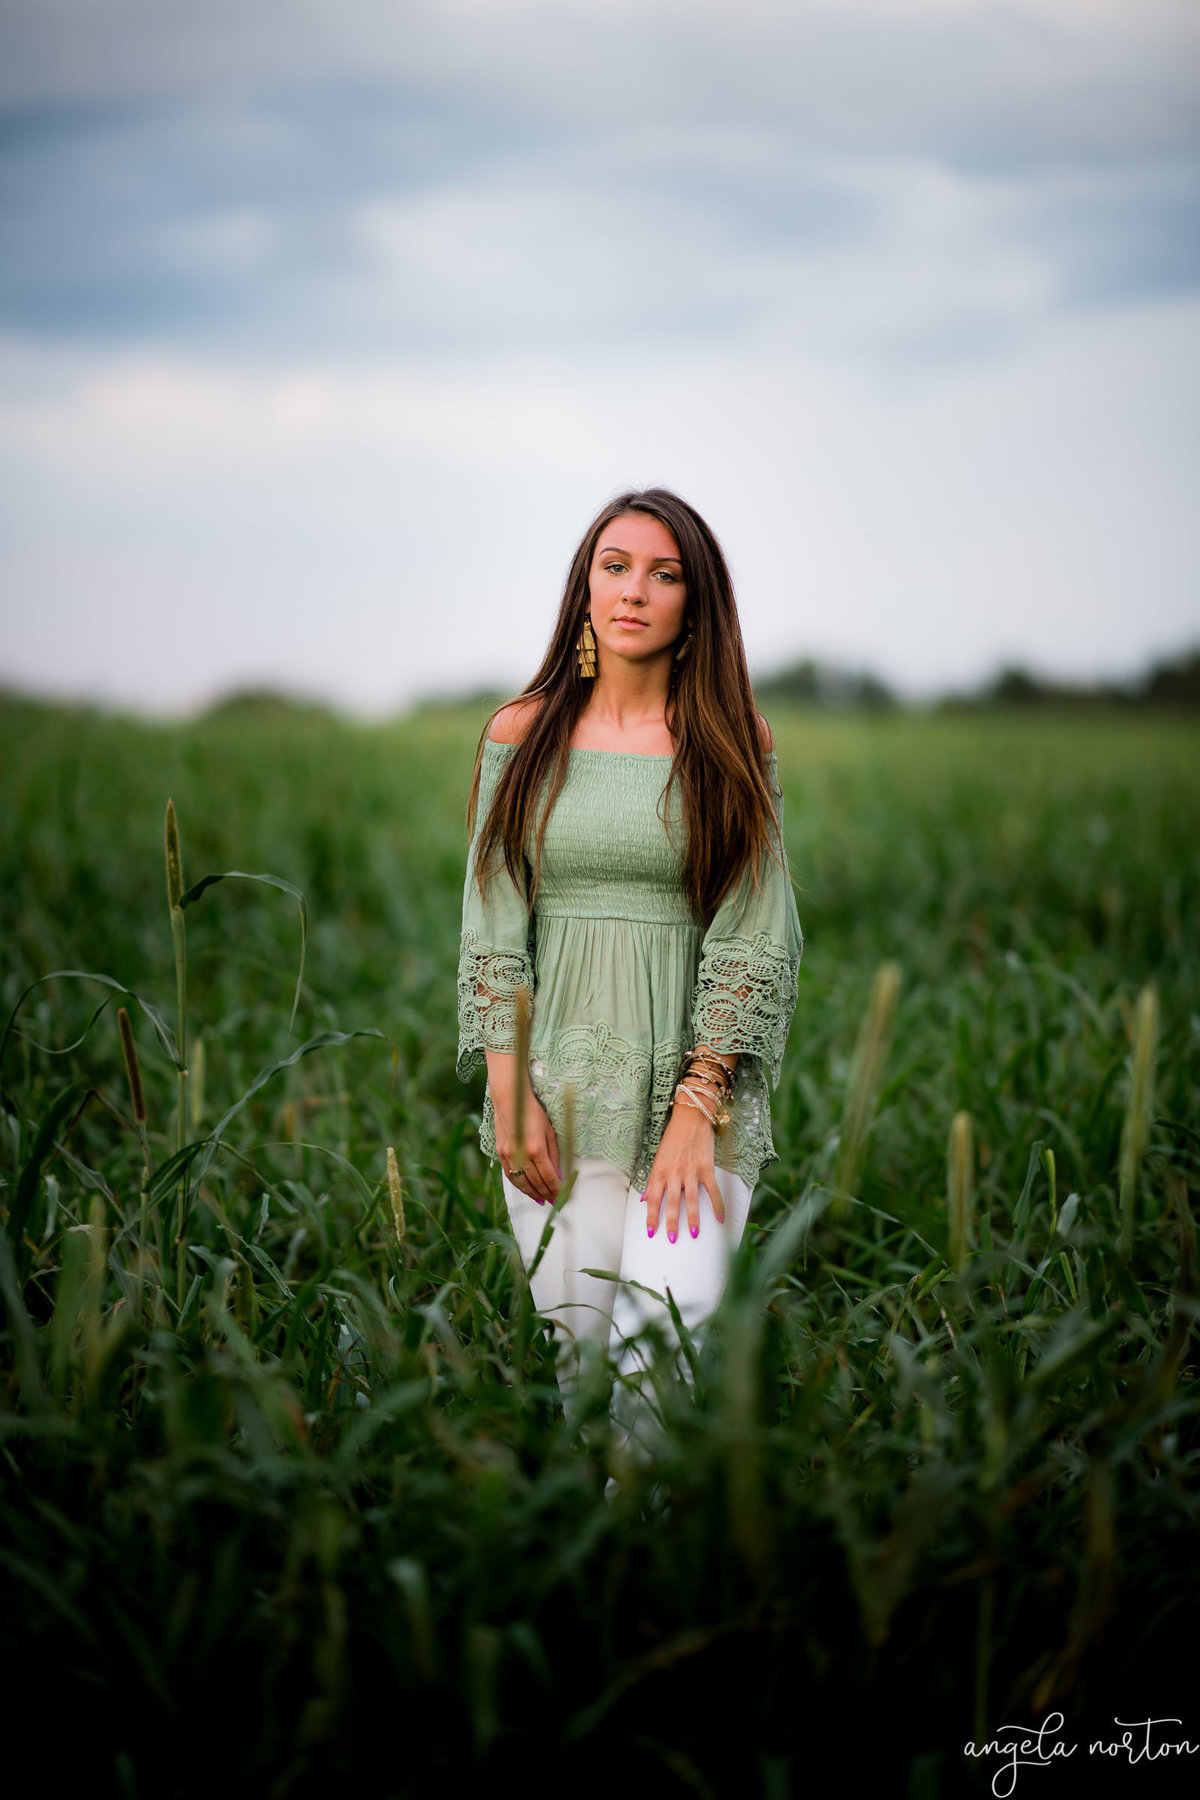 girl-in-green-field-angela-norton-photography